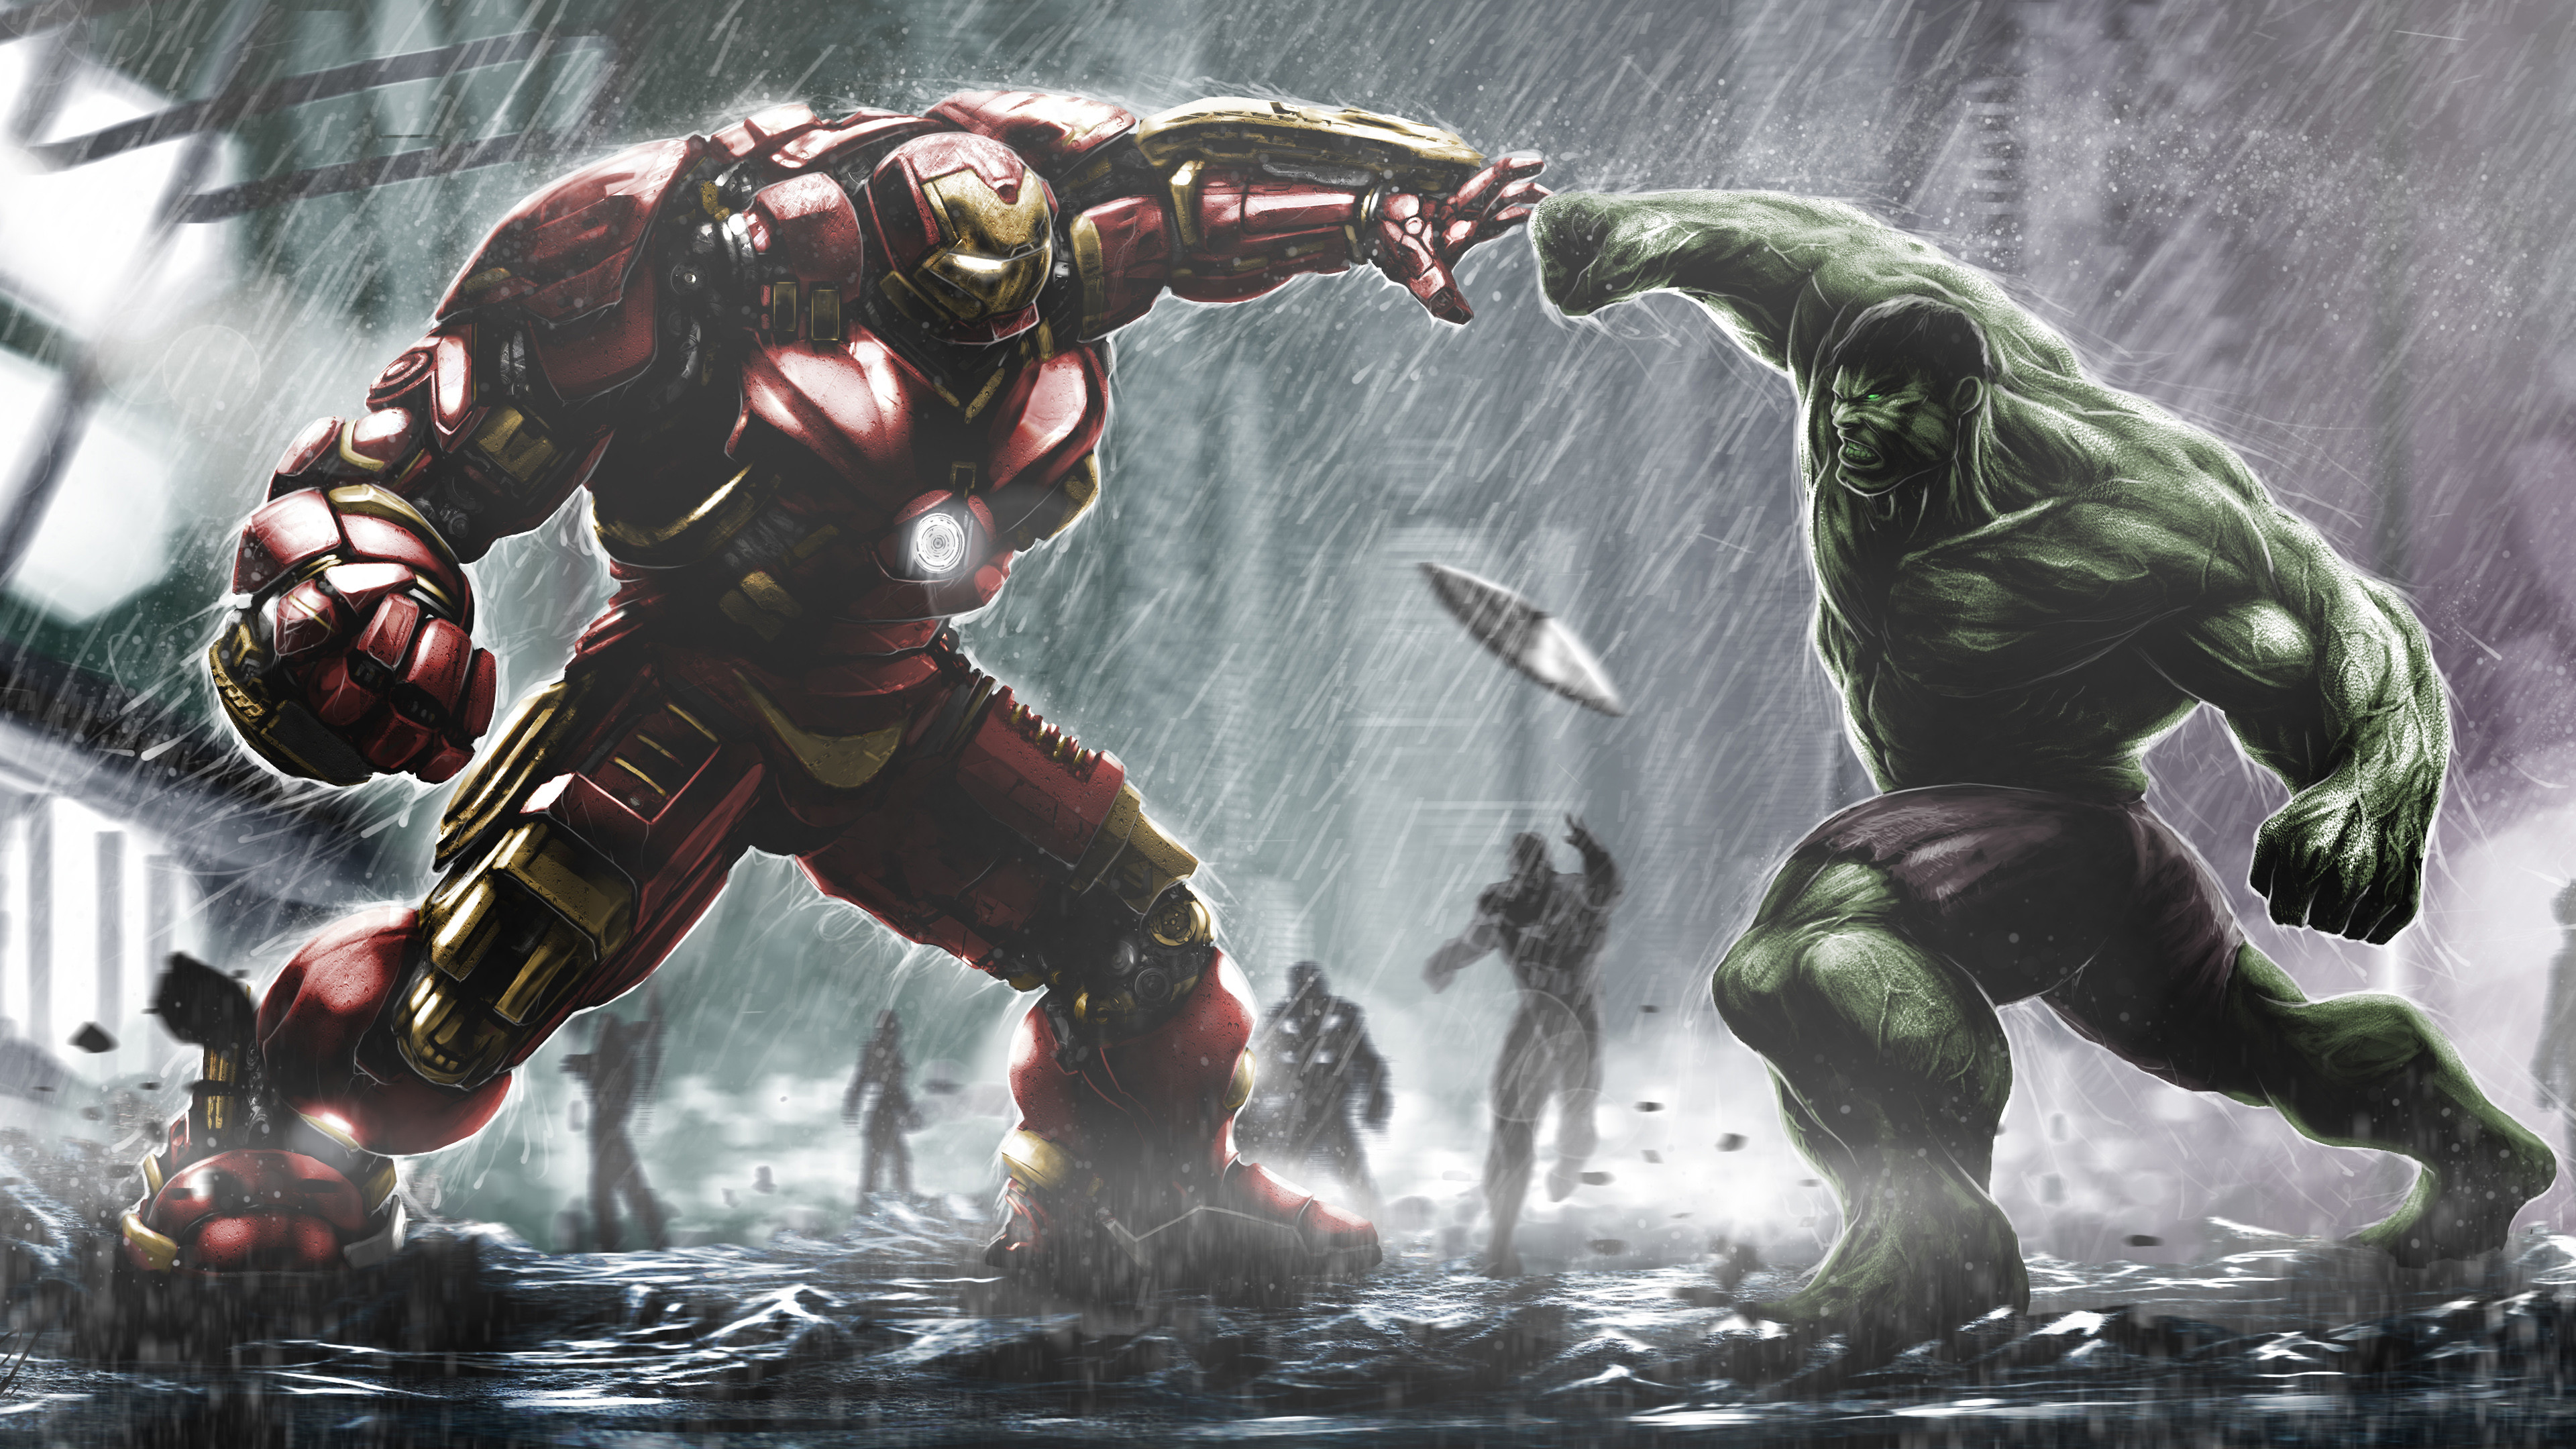 Res: 3840x2160, Hulkbuster Ironman Vs Hulk Wallpaper